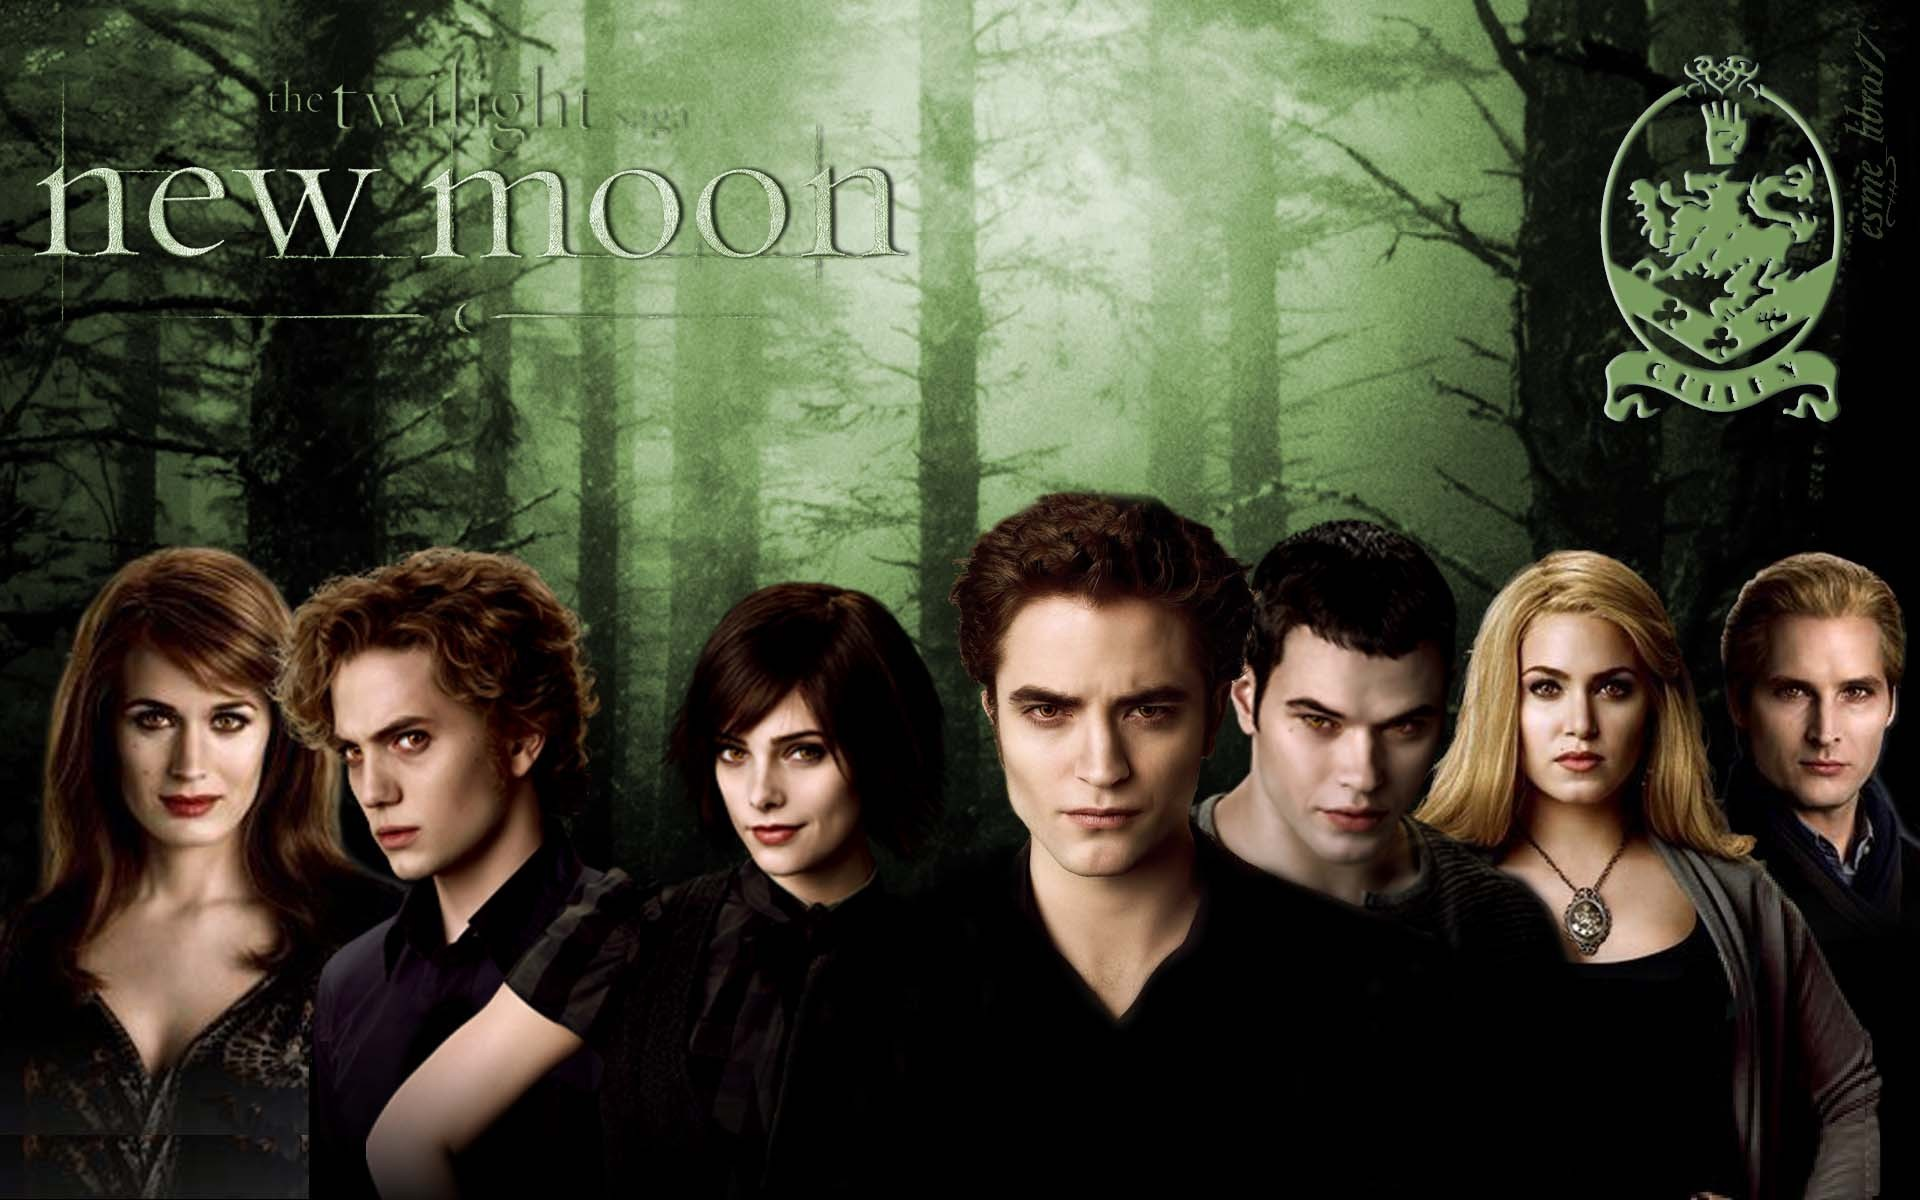 série crepúsculo imagens hd new moon wallpaper - the cullens hd